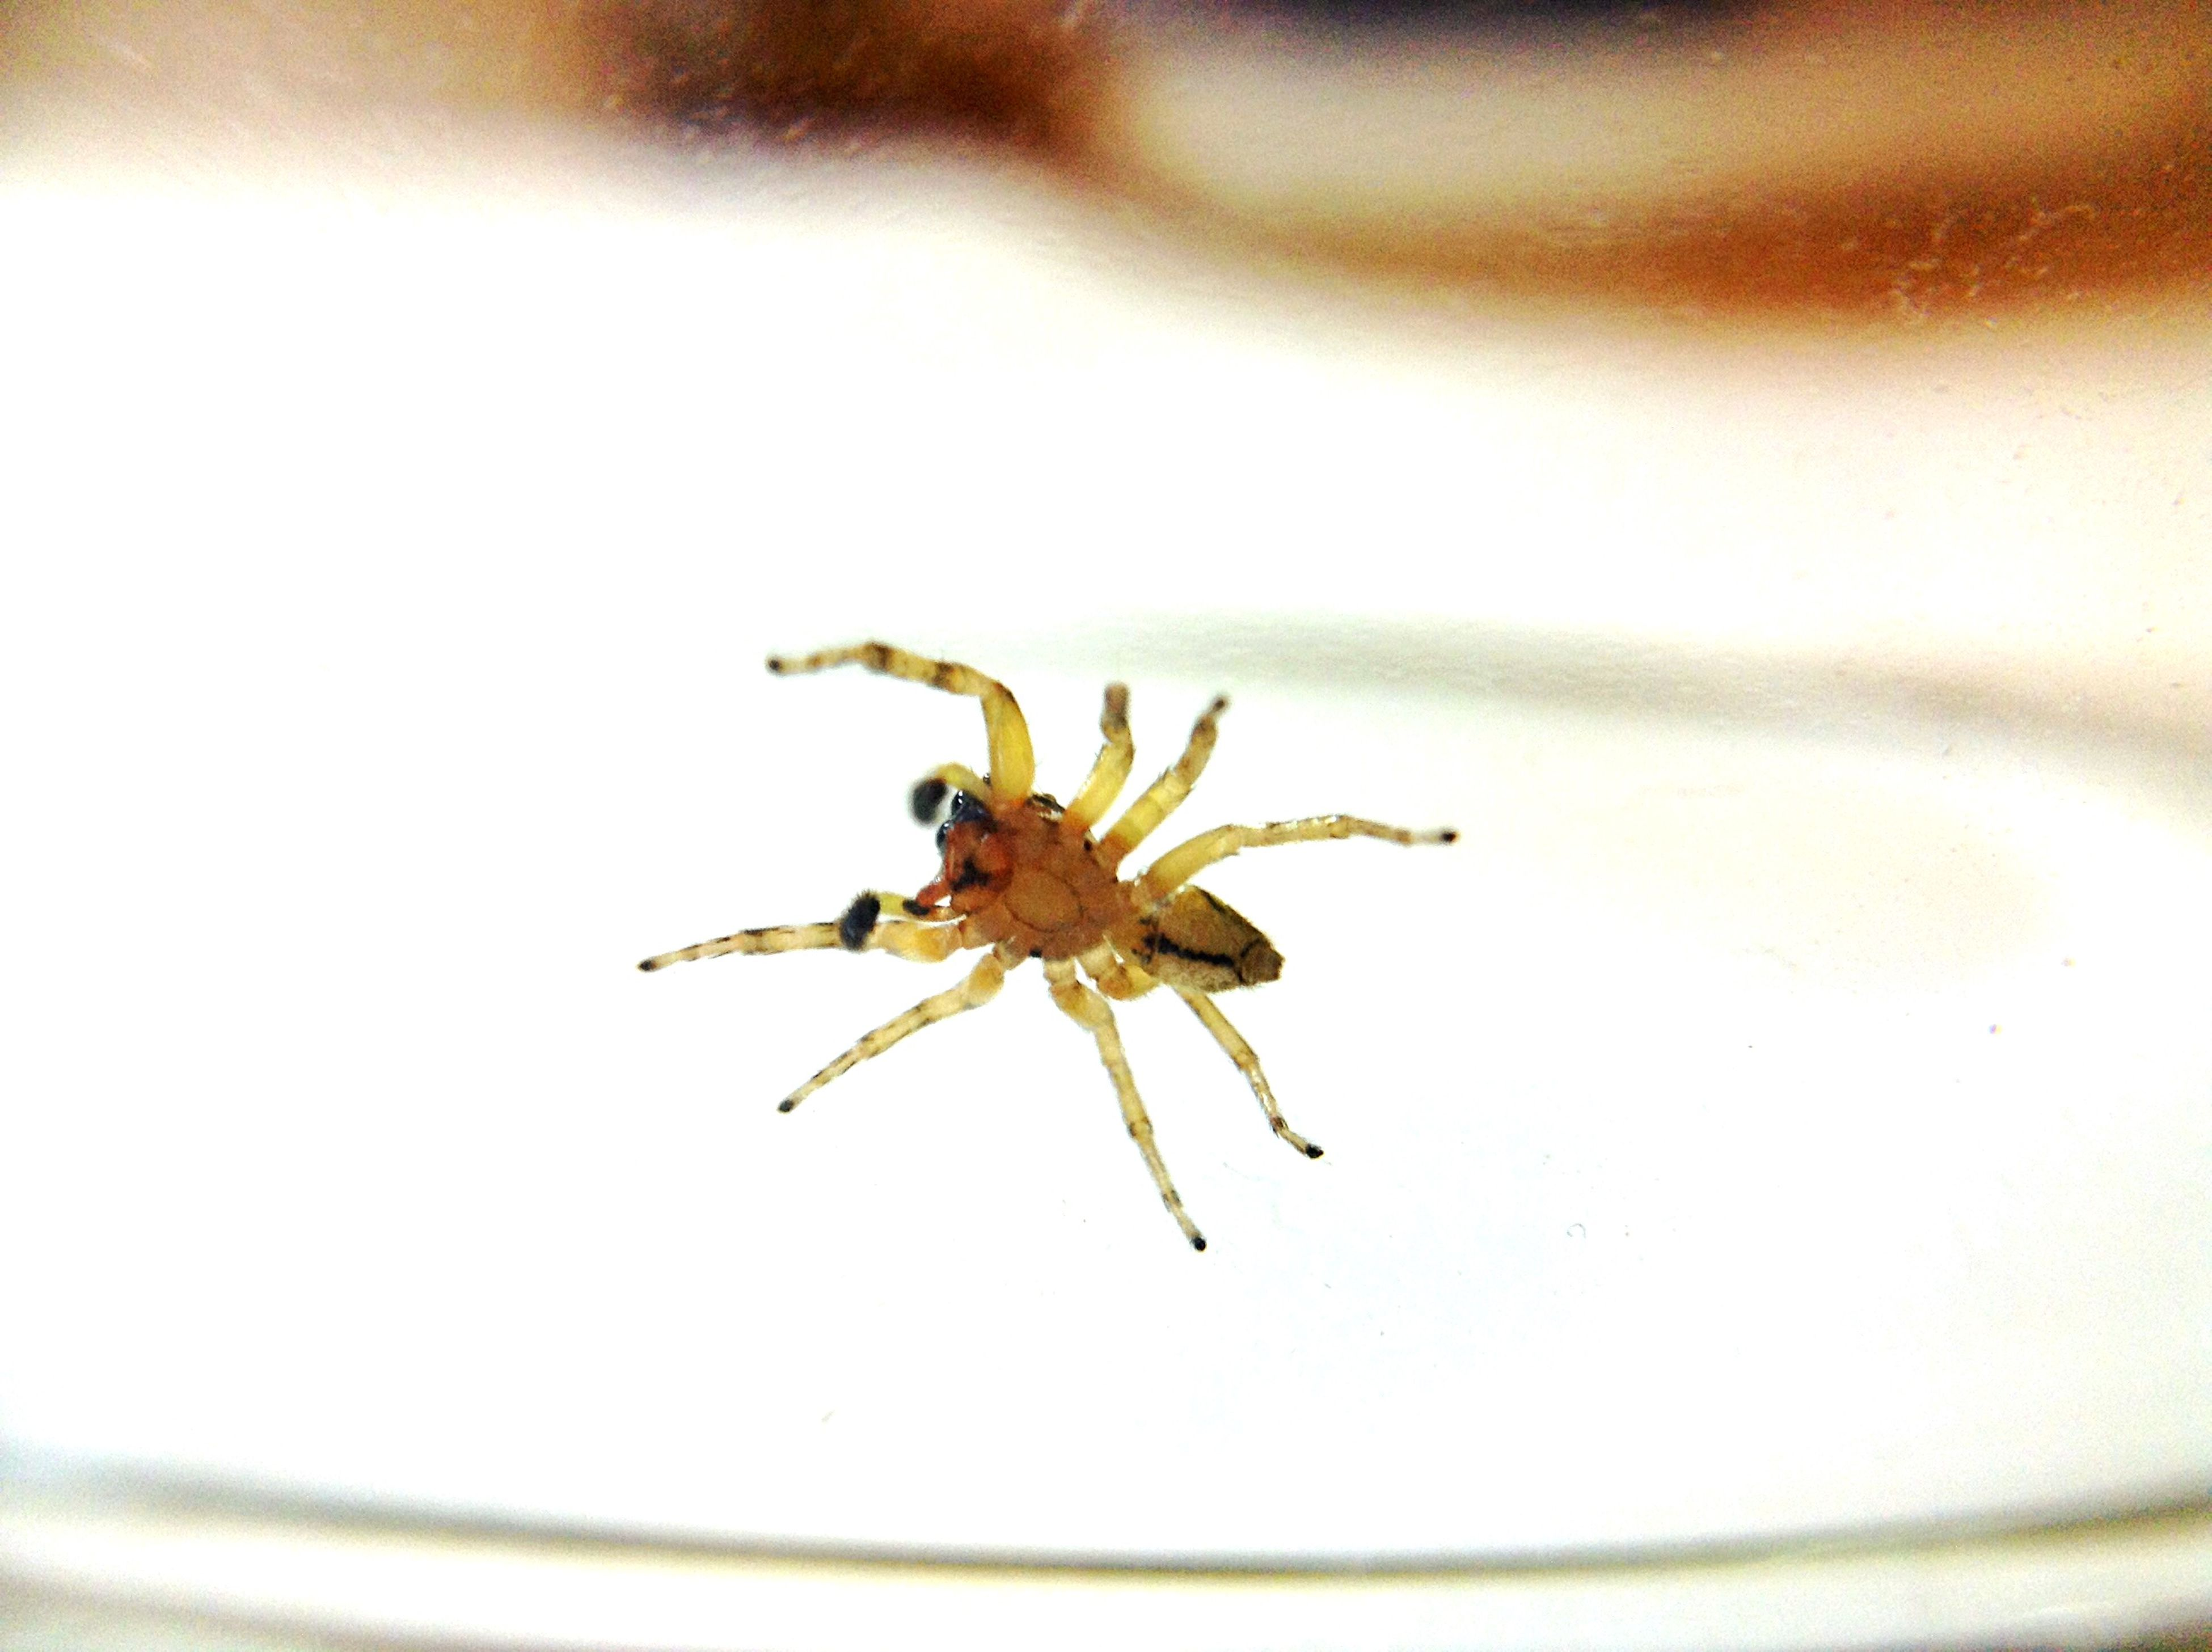 indoors, close-up, selective focus, insect, focus on foreground, still life, table, no people, studio shot, white color, spider, animal themes, dry, creativity, high angle view, single object, ideas, nature, wall - building feature, day